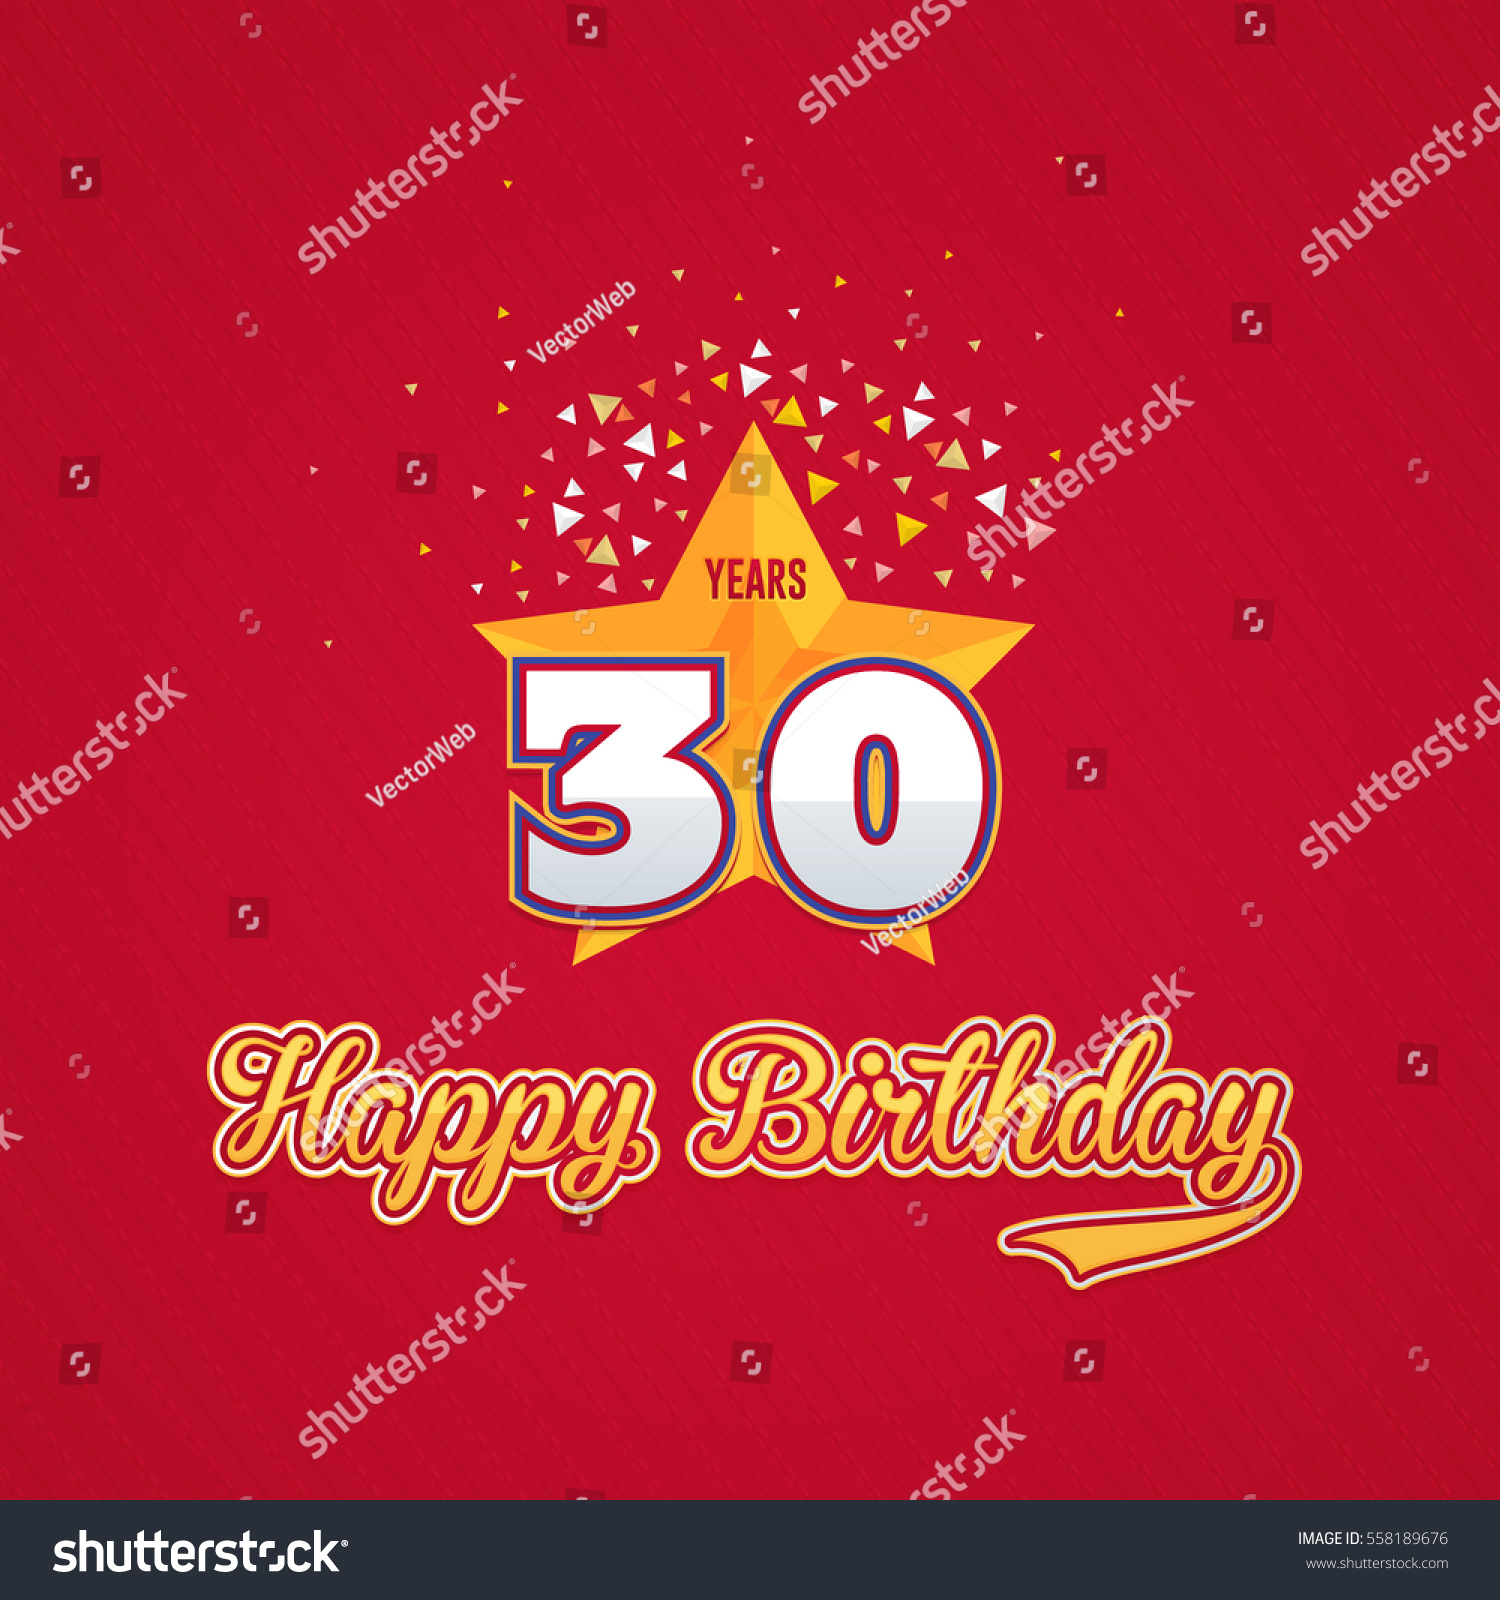 birthday colors for age 30 ; stock-vector-colorful-happy-birthday-celebration-design-age-concept-greeting-card-template-red-colors-558189676